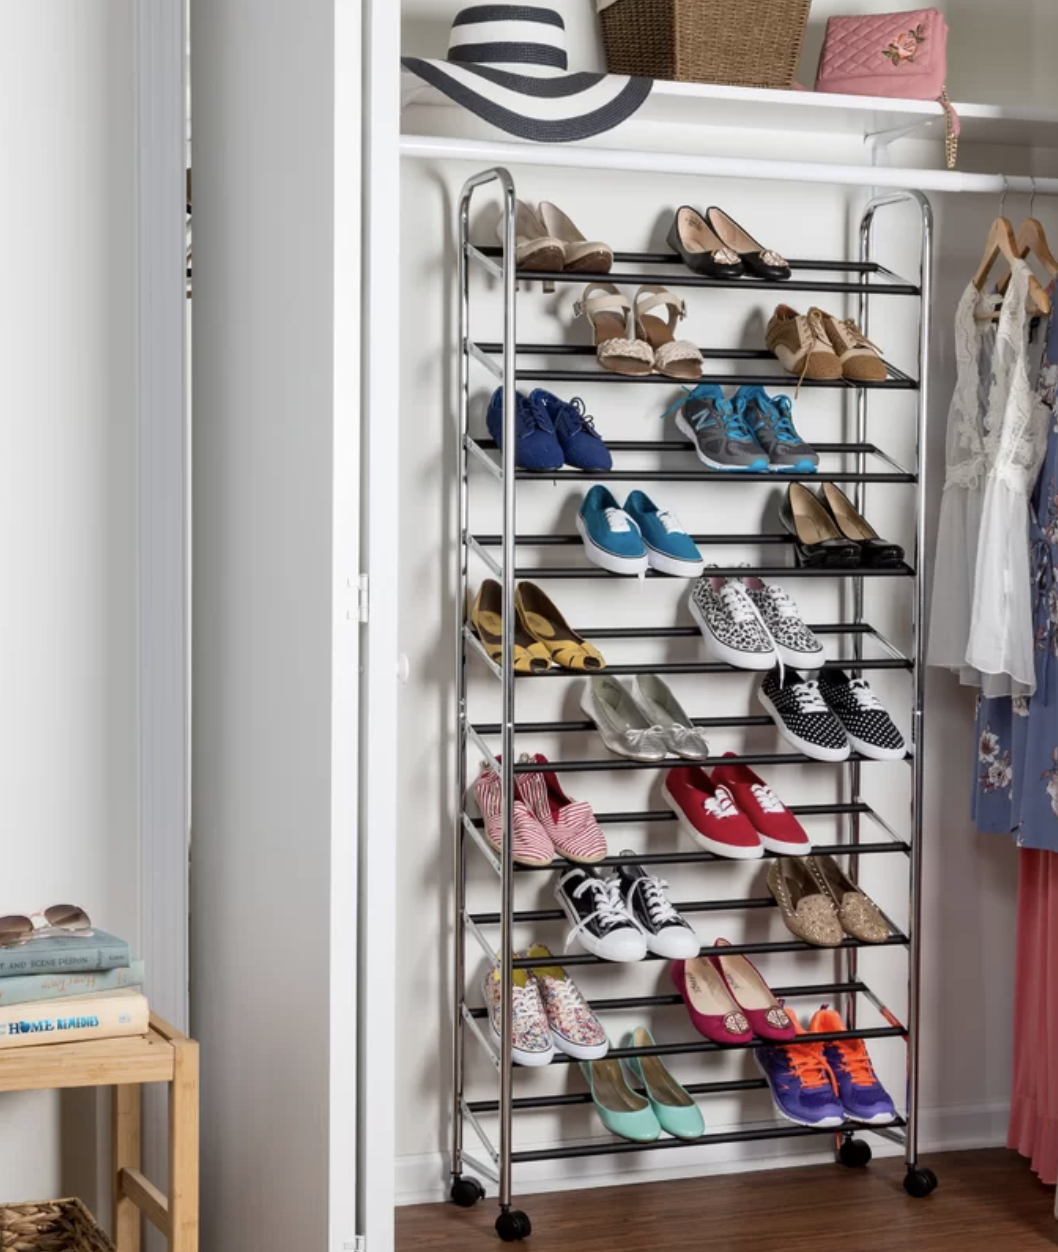 The 50 pair shoe rack inside of a close with various shoes on it, including sneakers, flats, and heels